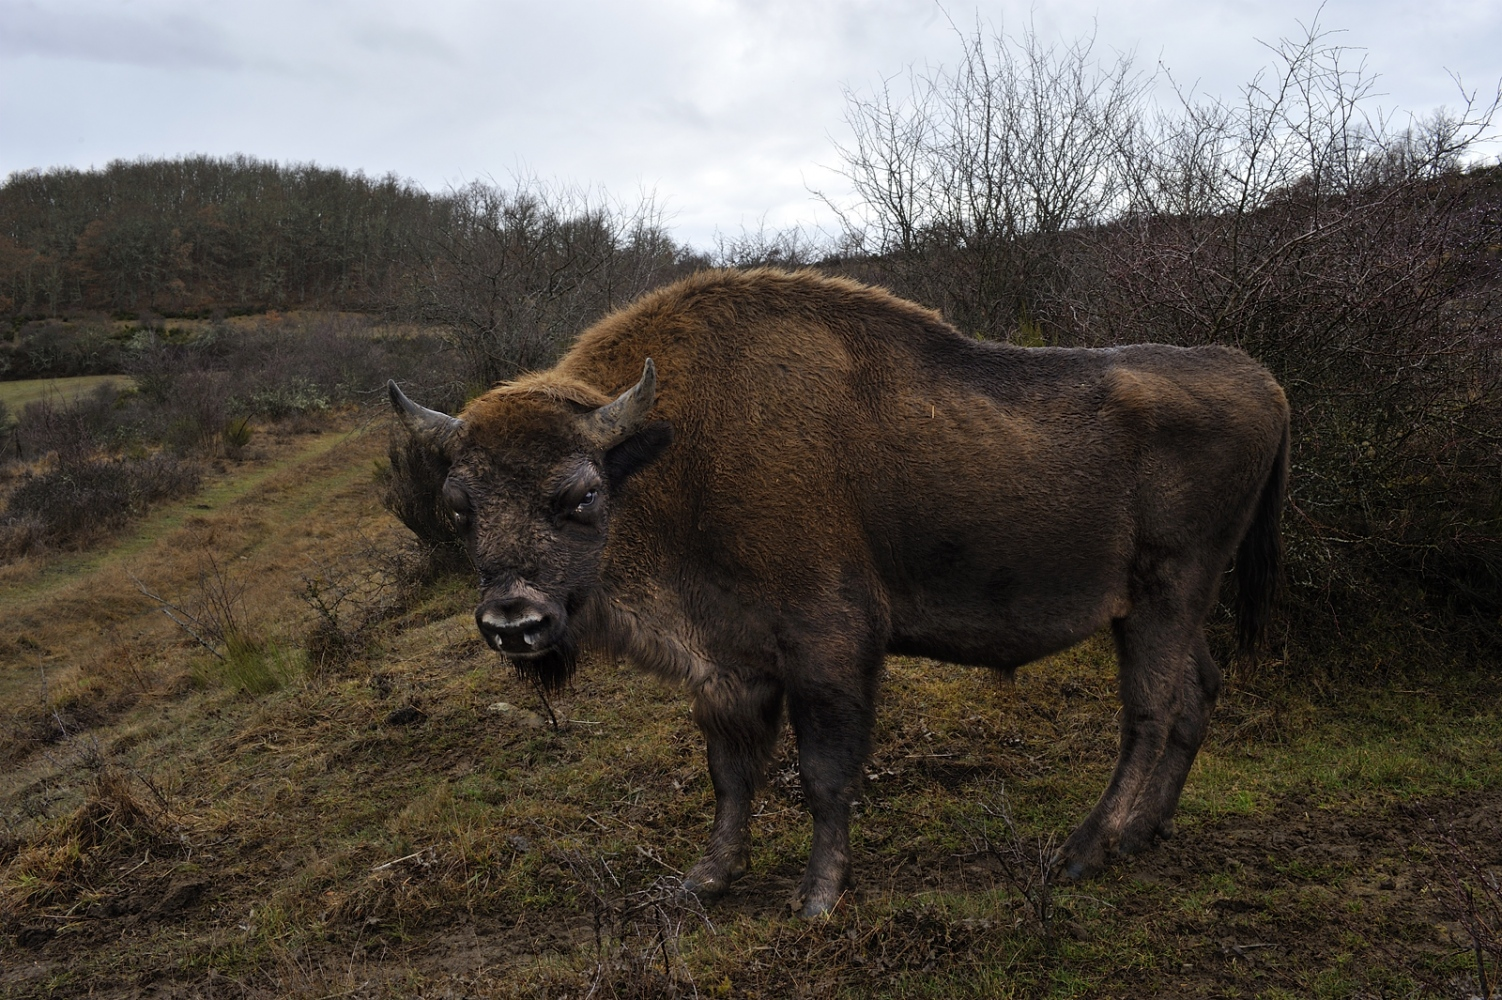 The bison population had increased by 13.6% since 2005, the total area covered by the wholepopulation had increased by 32%.